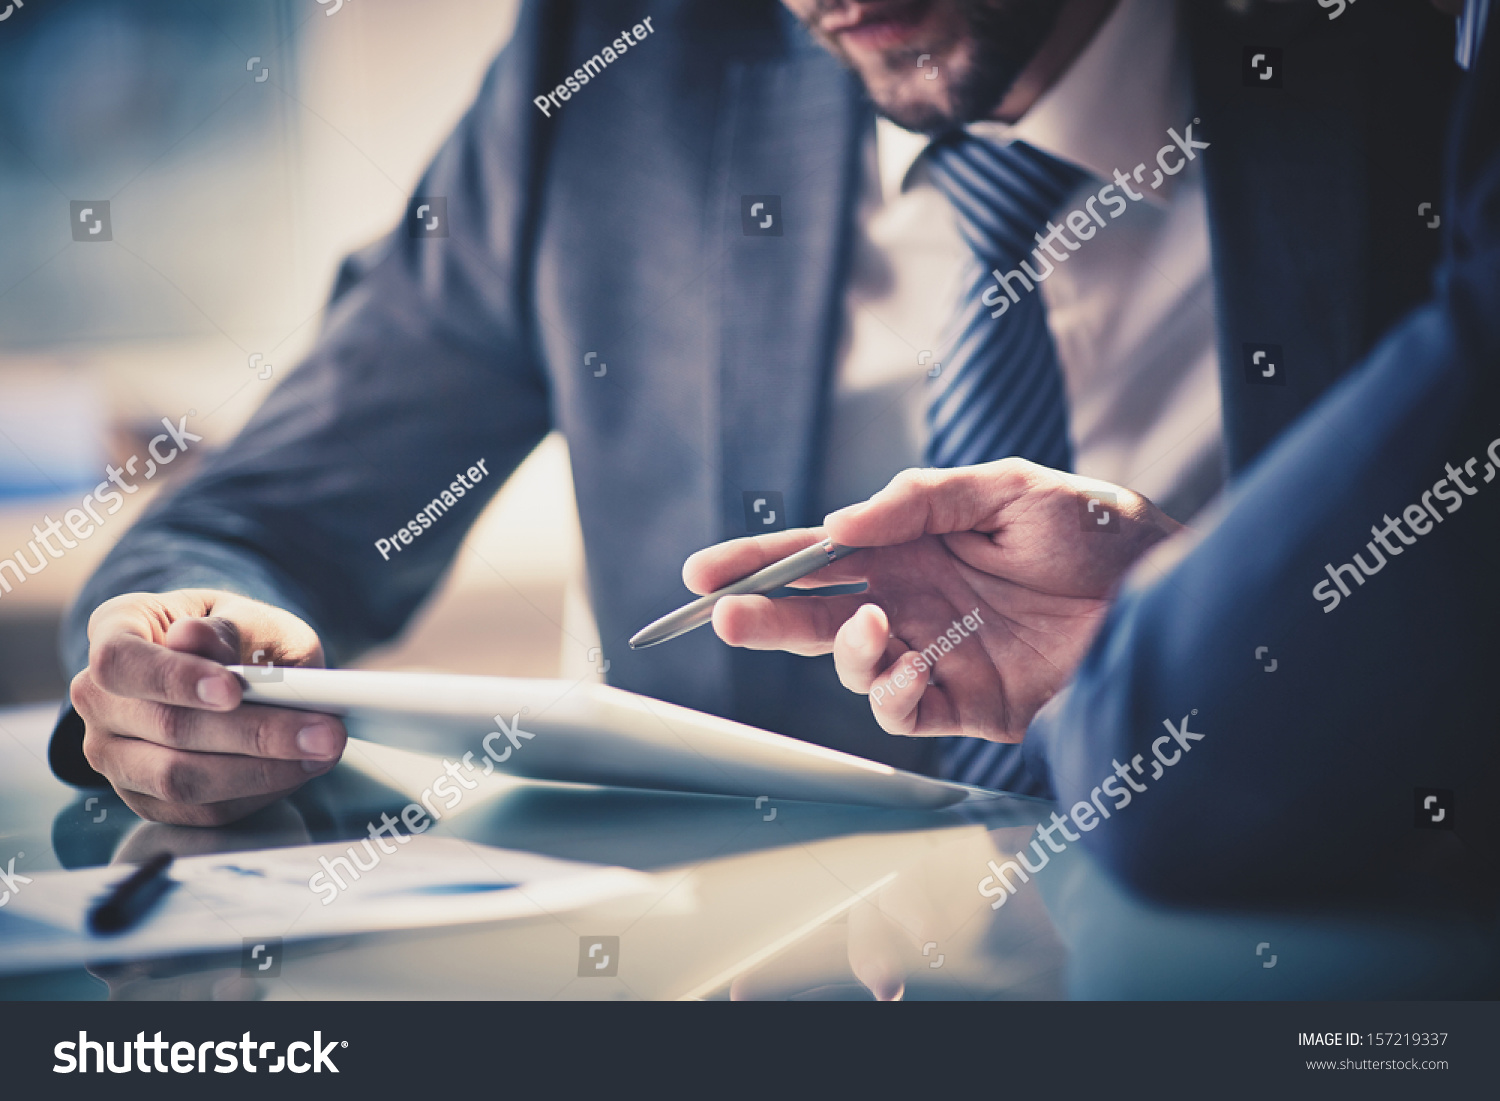 Image of two young businessmen using touchpad at meeting #157219337 - 123PhotoFree.com